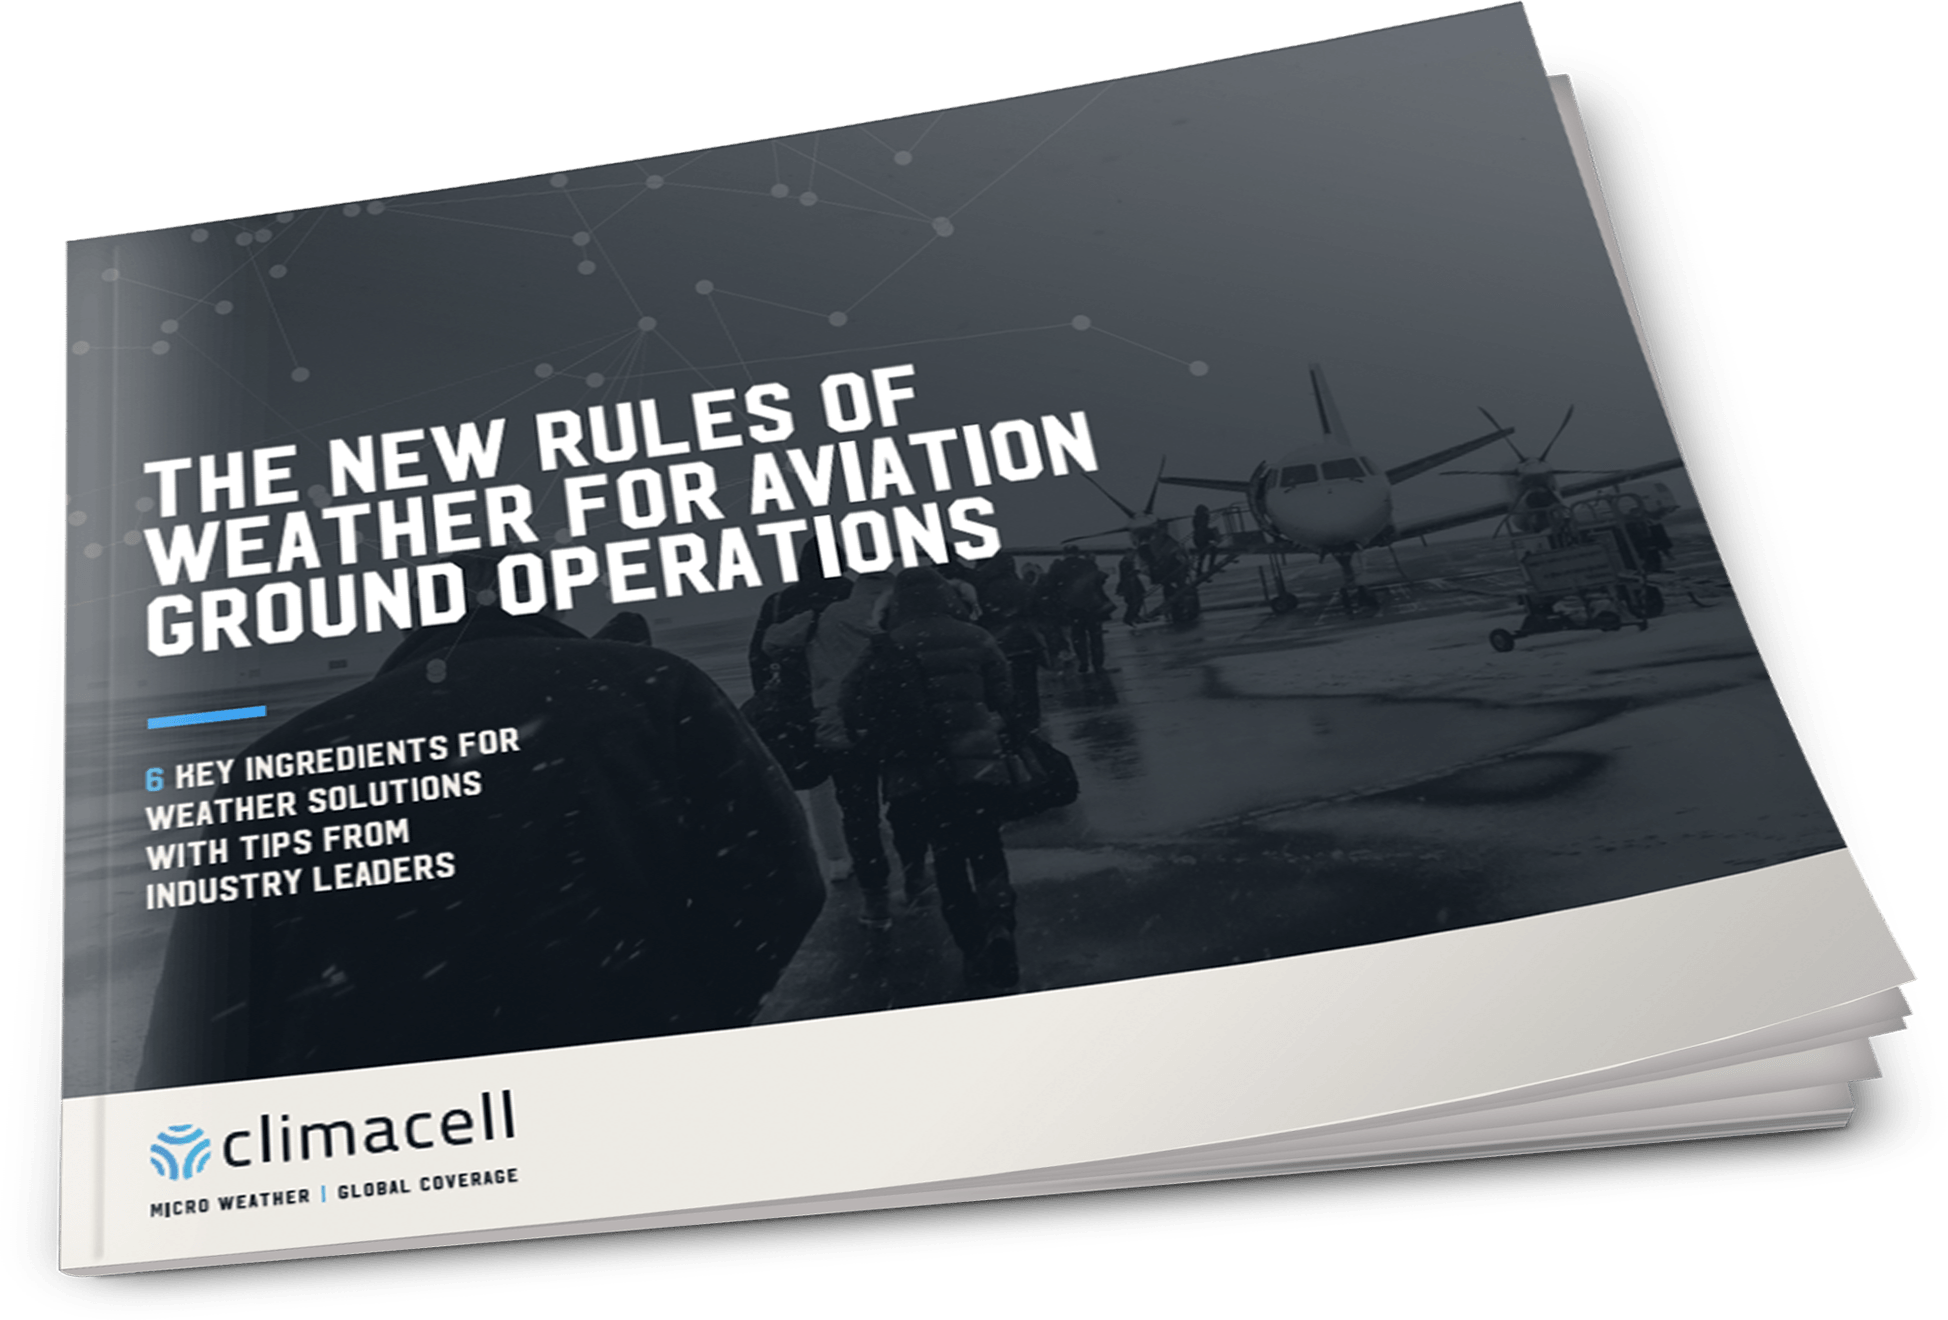 The New Rules of Weather for Aviation Ground Operations | ClimaCell | Micro Weather Global Coverage